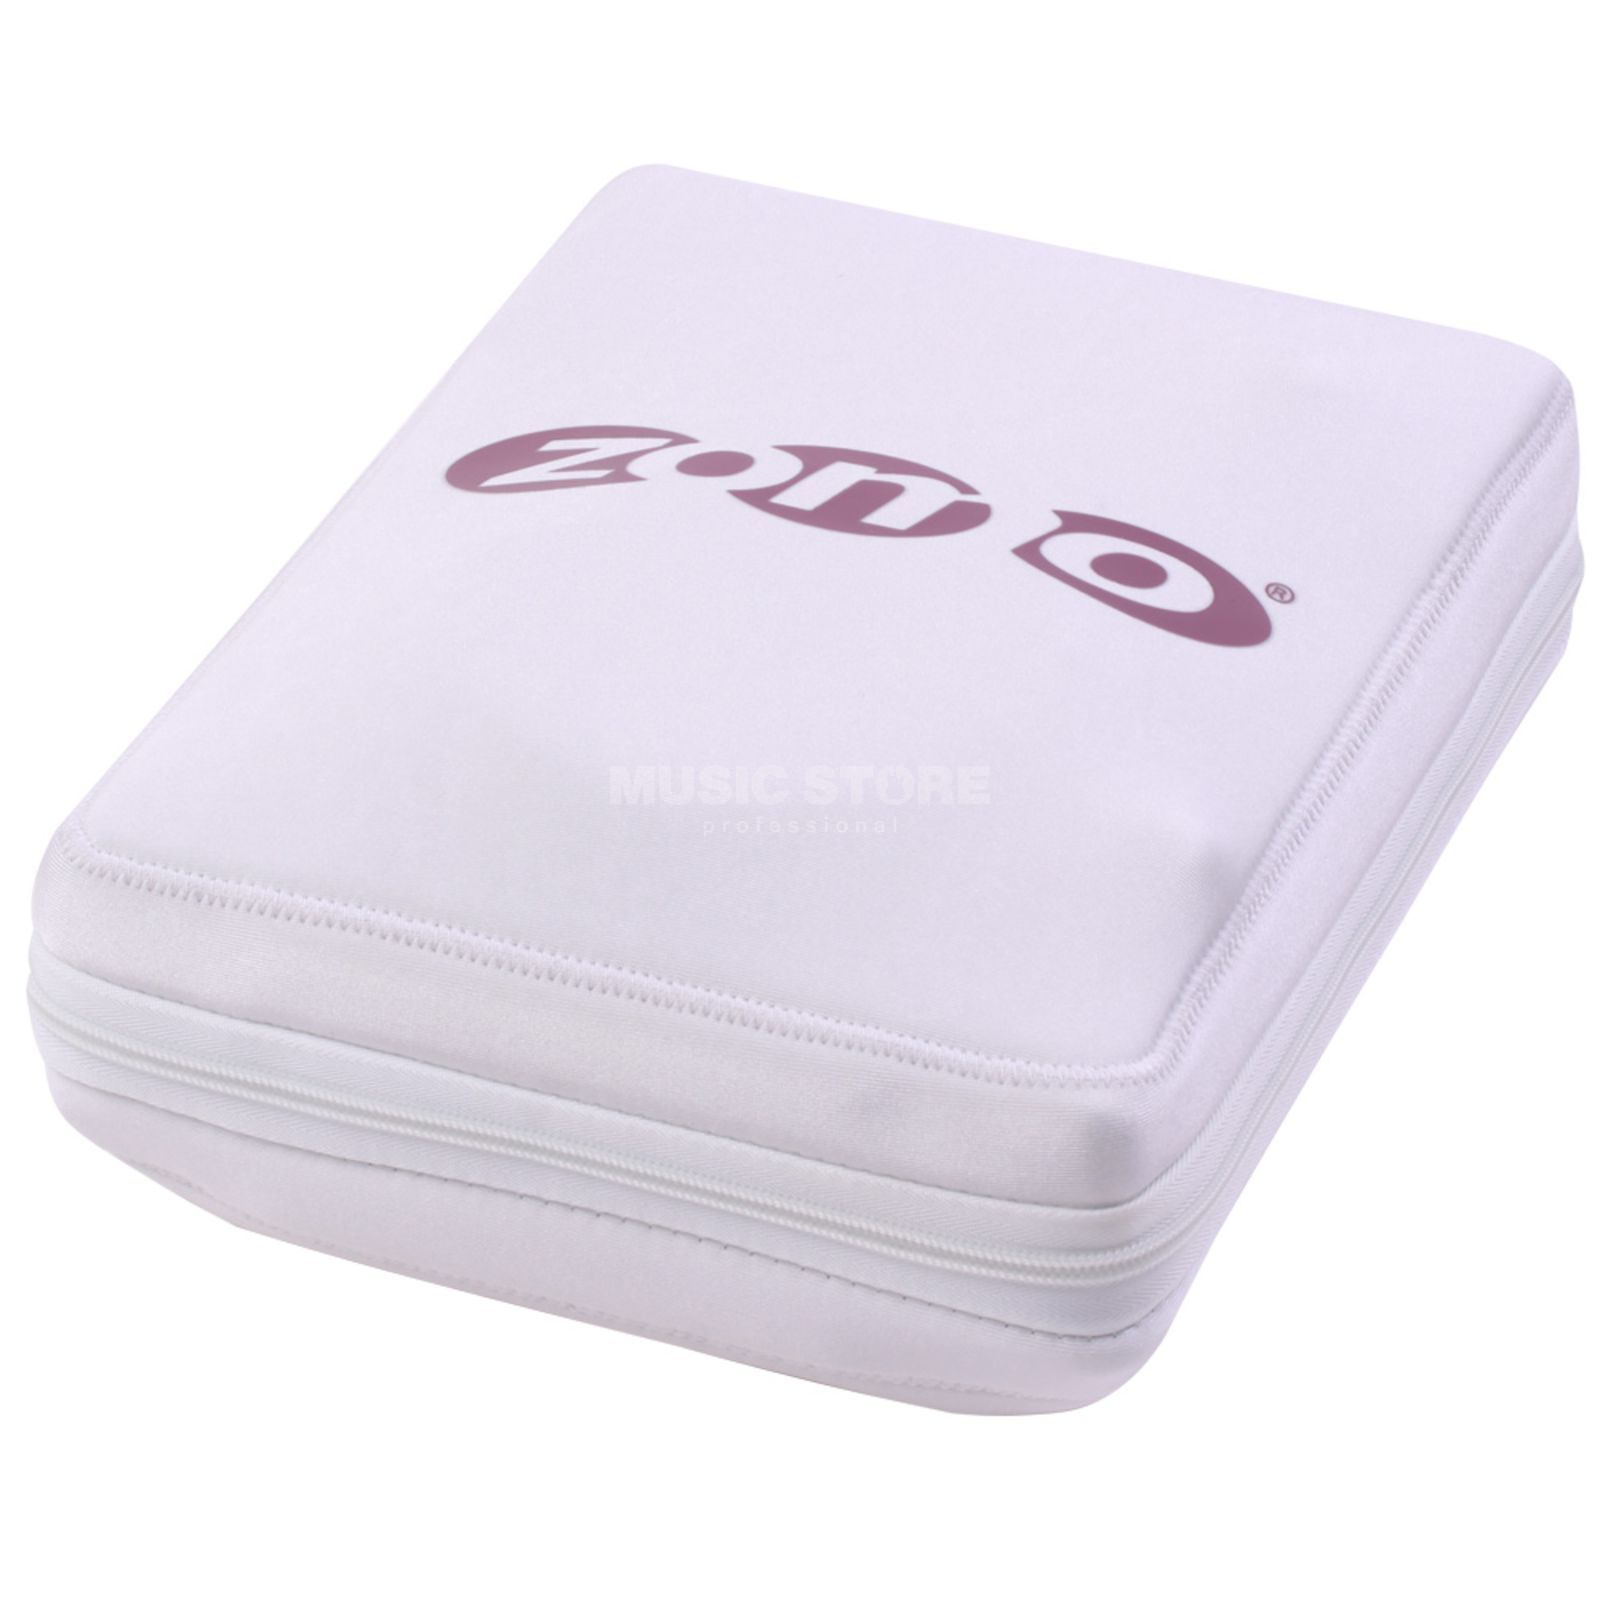 Zomo Predective Cover Predect 350 white for Pioneer CDJ-351 Product Image